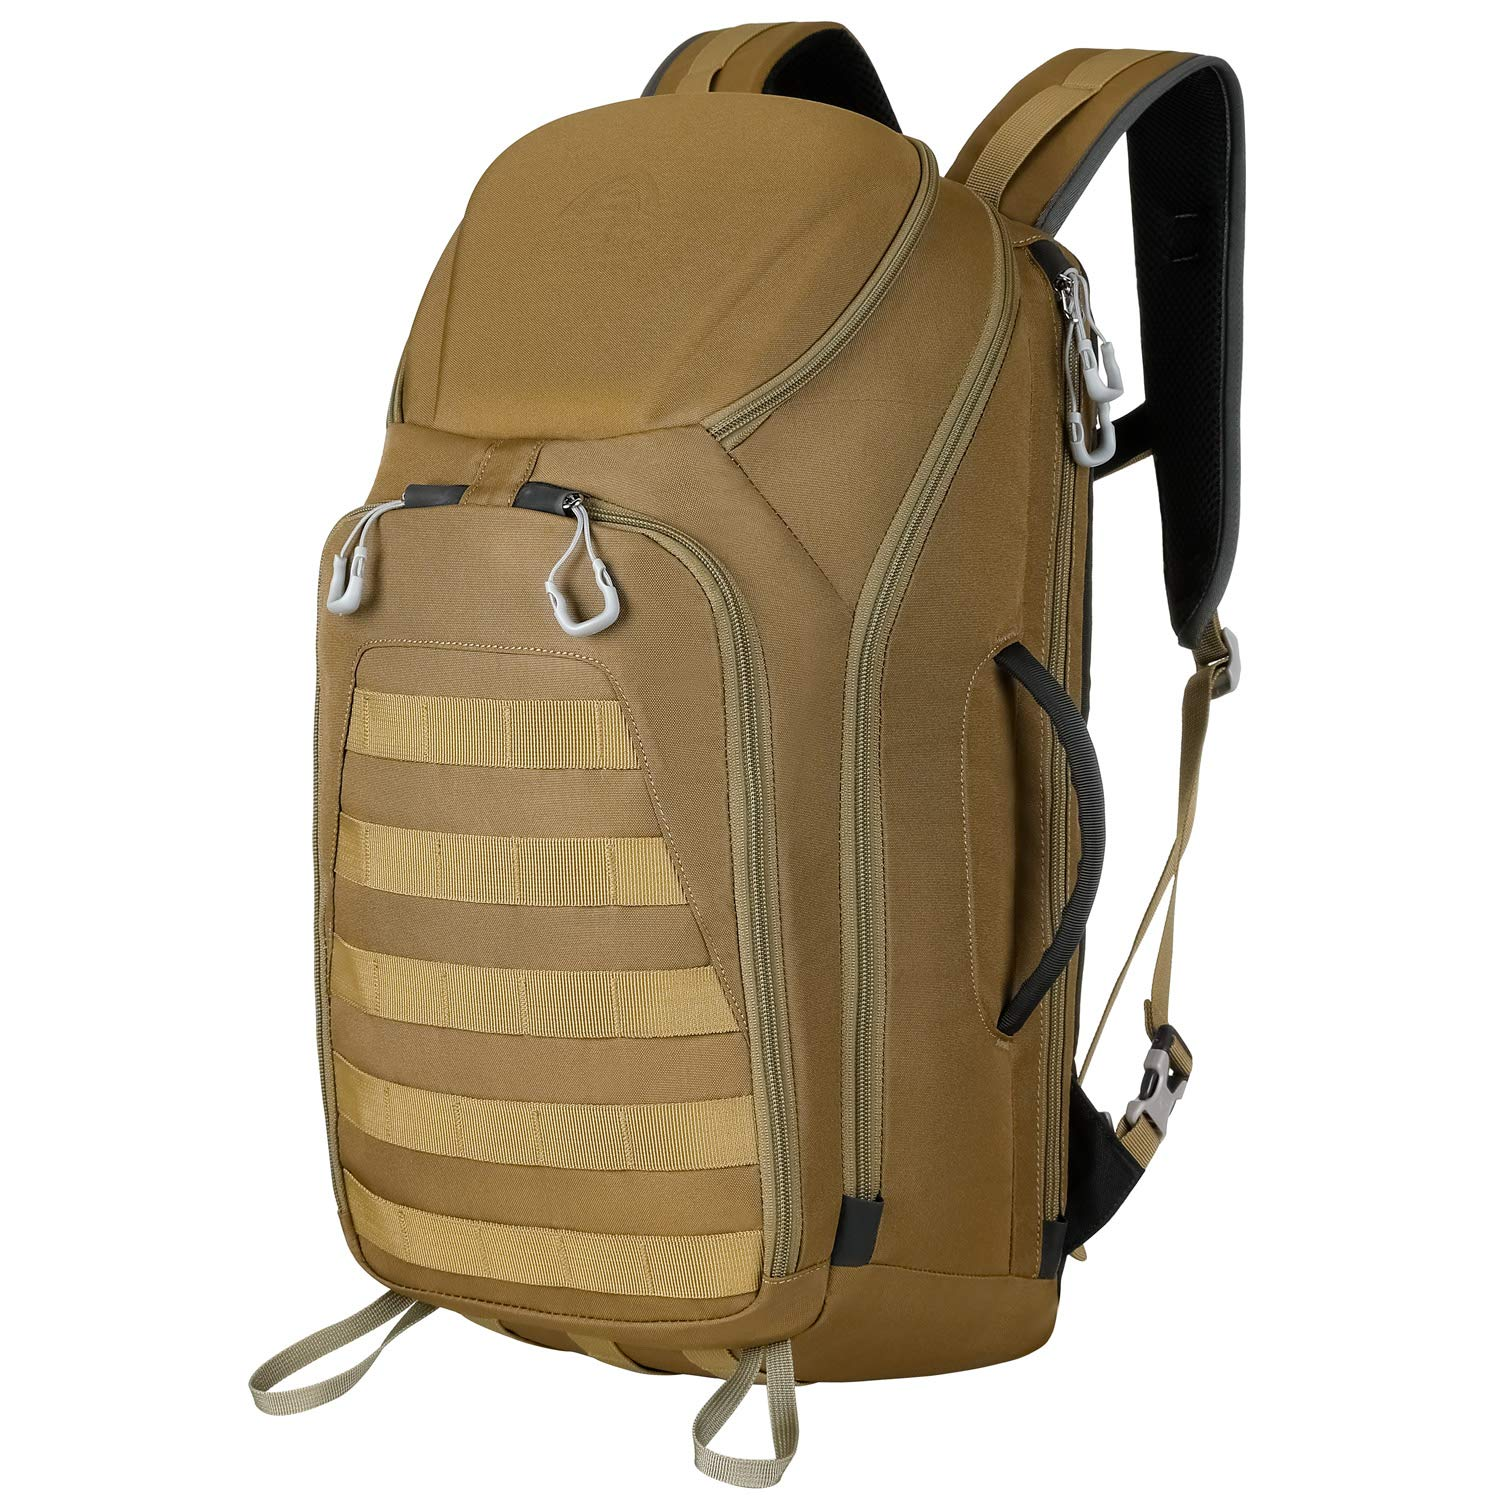 Aione Tactical Backpack Military Army Backpack Daypack 25L/30L/32L/51L Assault Pack Bug Out Bag with Hard Shell Top Pocket